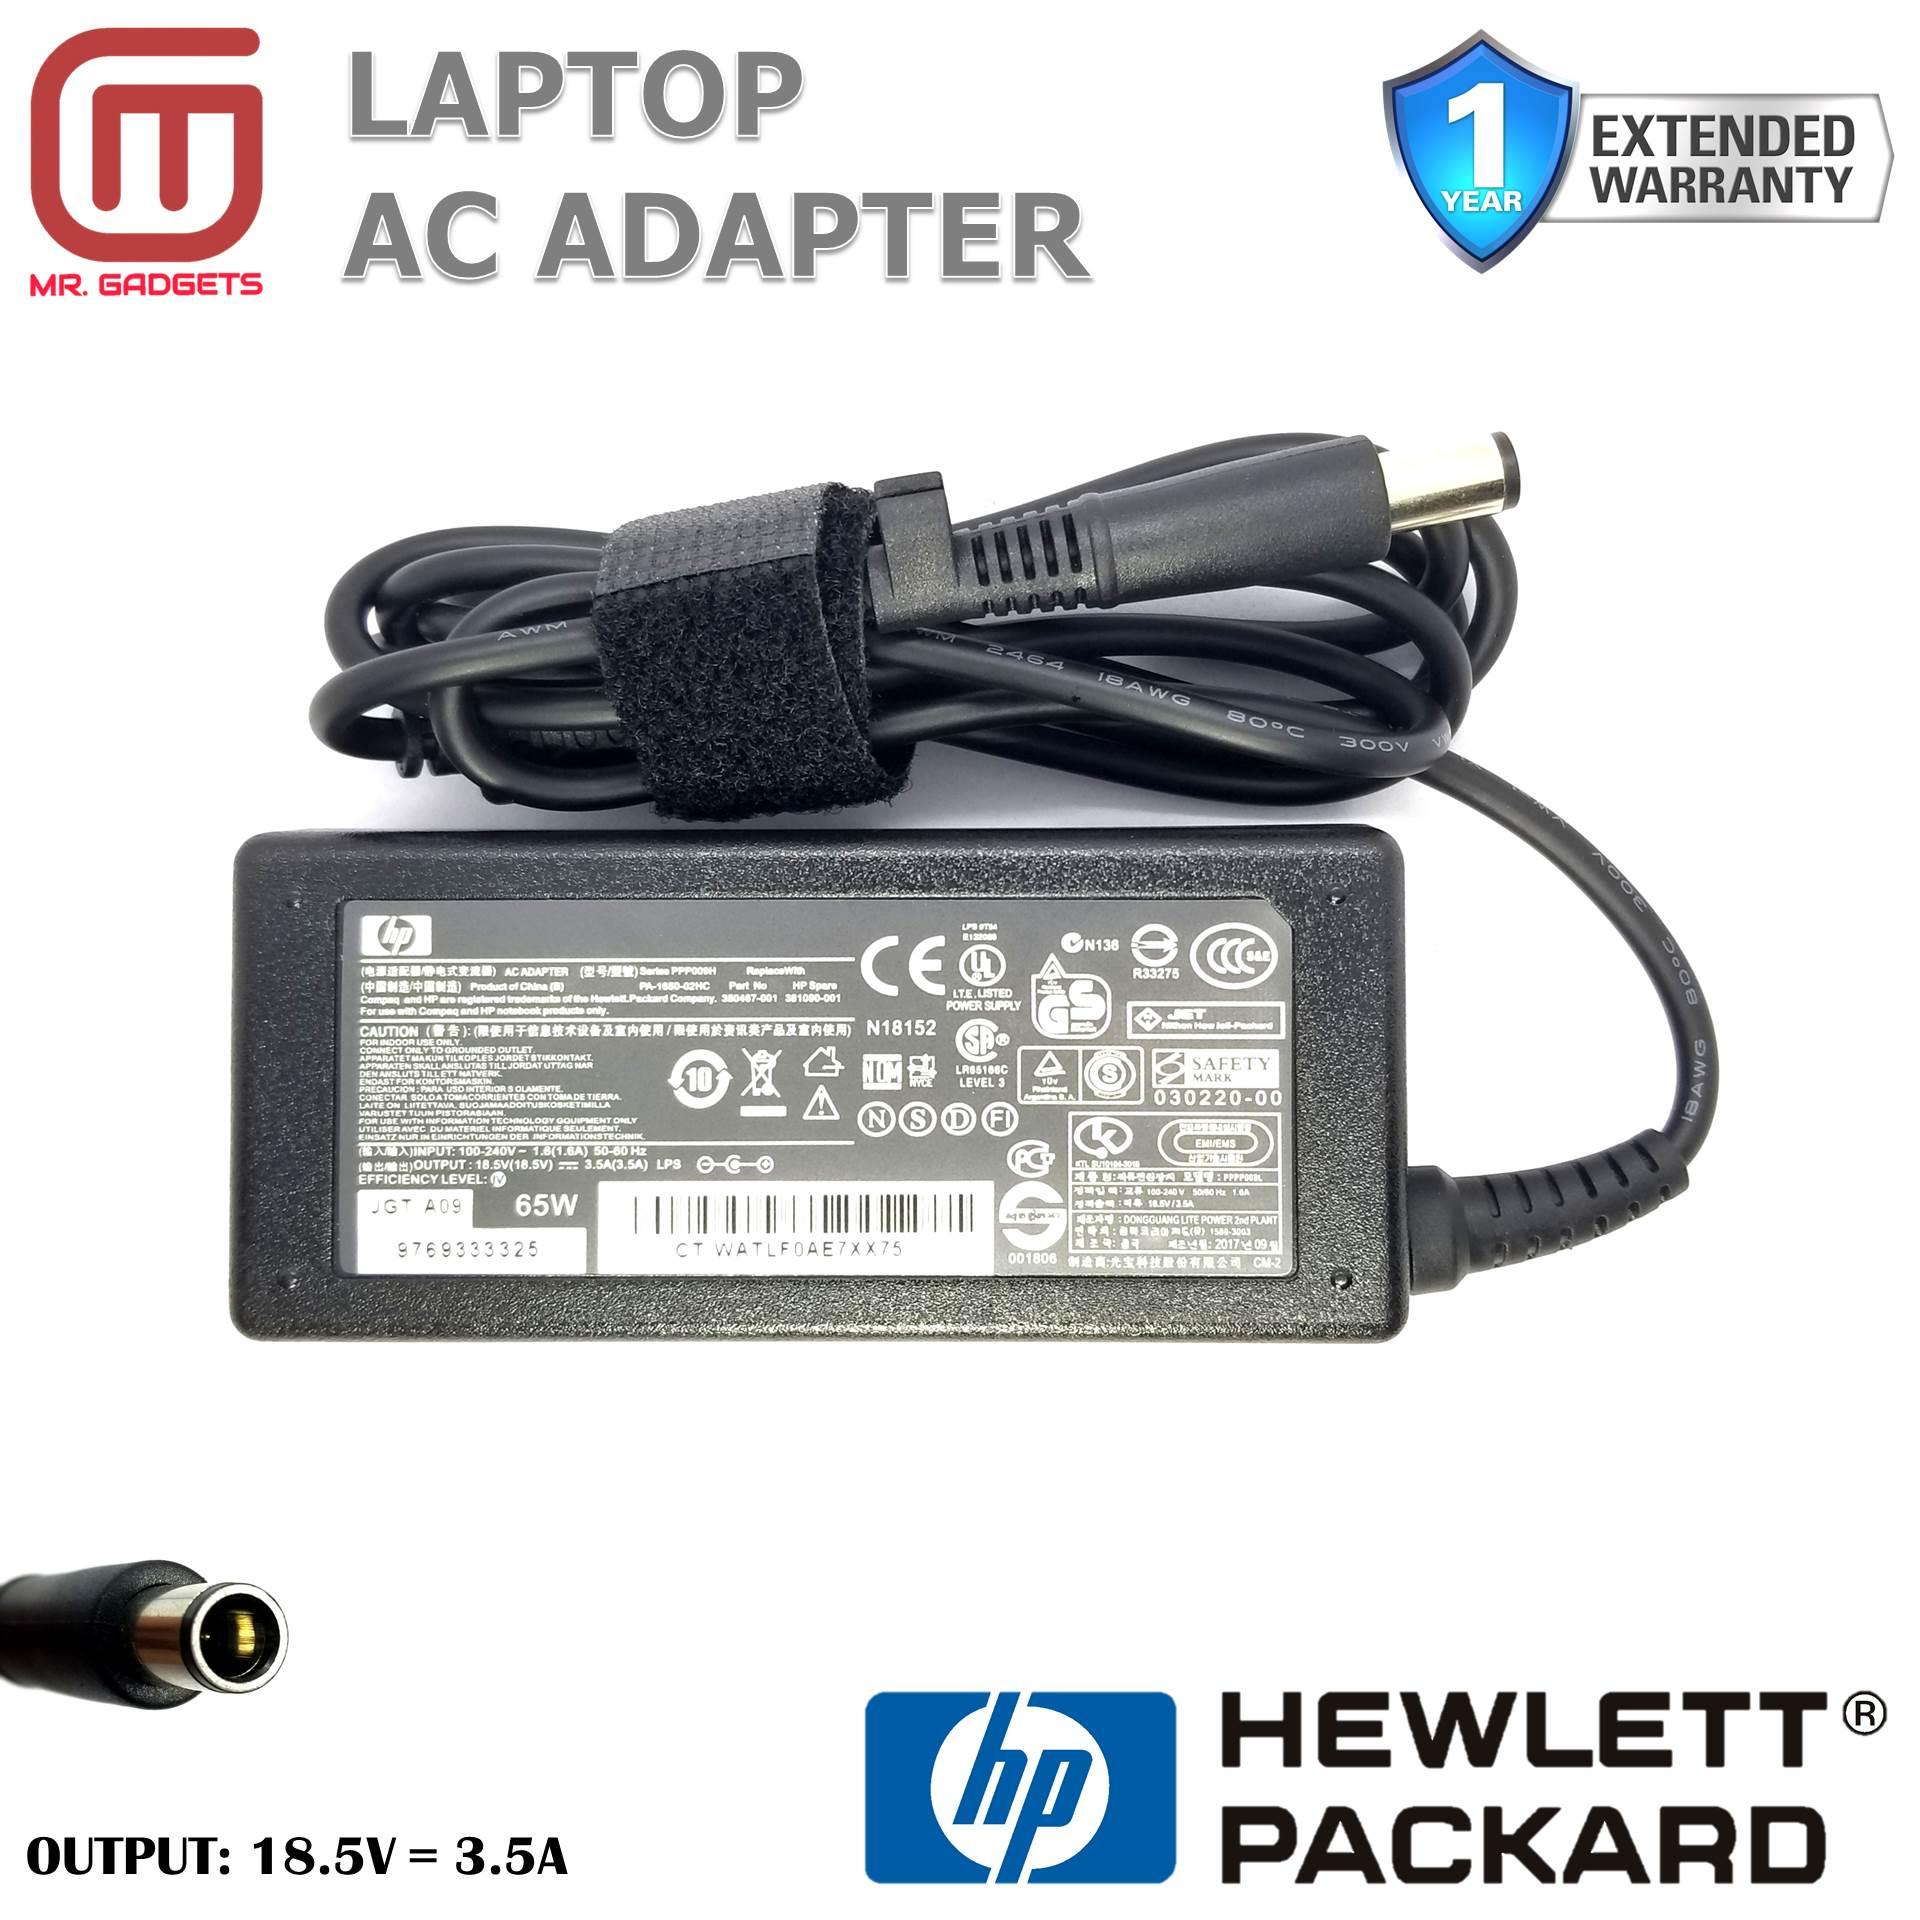 Laptop Charger Adapter for HP Probook 430 440 450 455 640 645 650 655 G1 G2  4420s 4430s 4440s 4510s 4520s 4525s 4530s 4535s 4540s 4545s 4730s 6360b